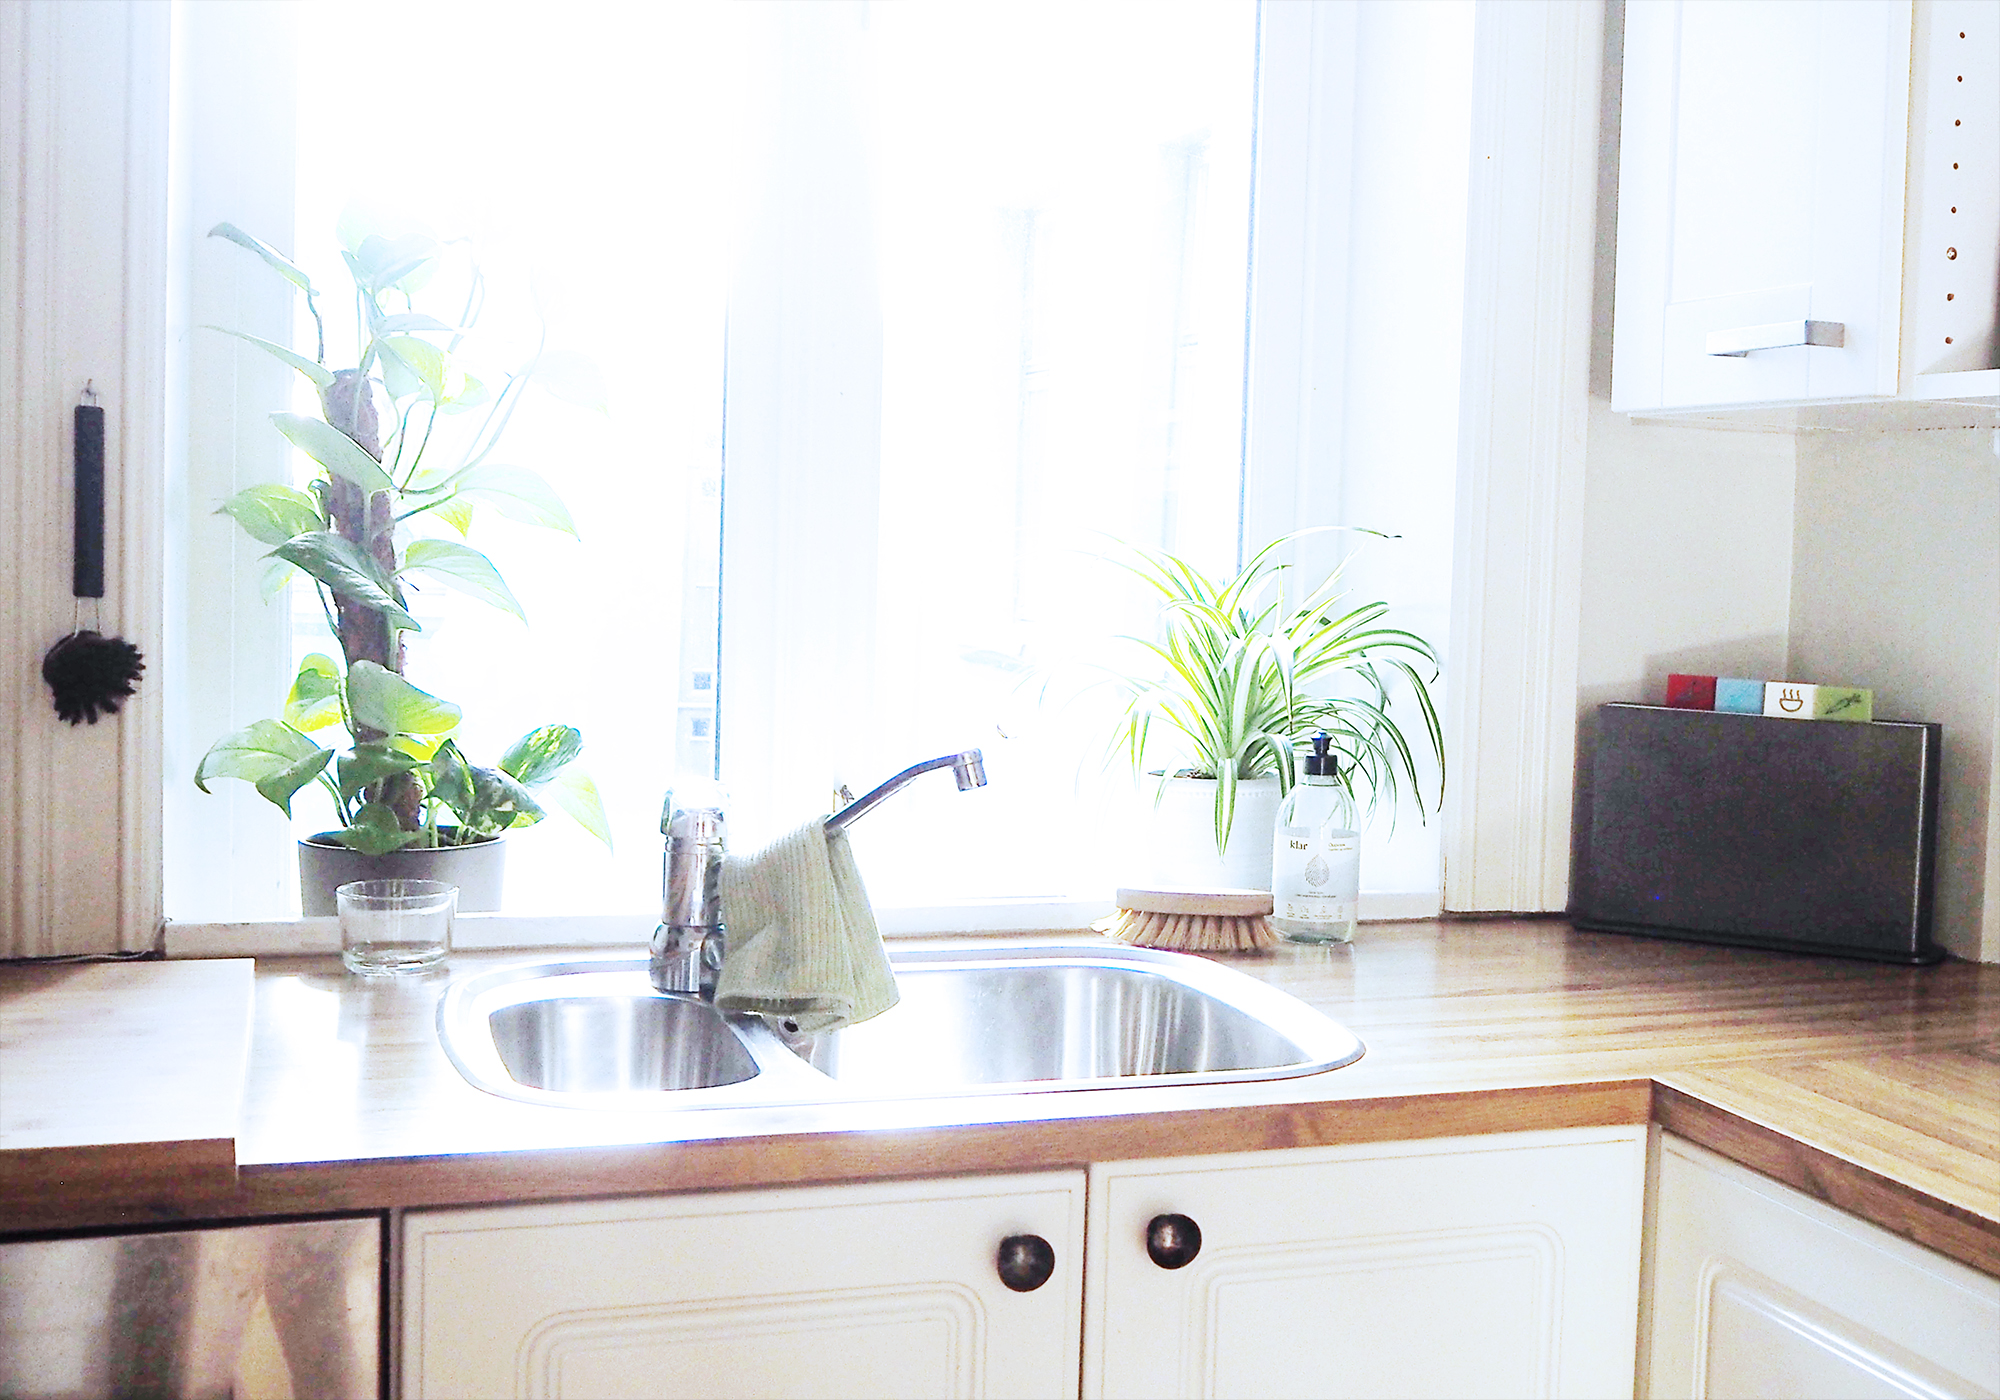 How to create a minimalist kitchen | Simplisticly So